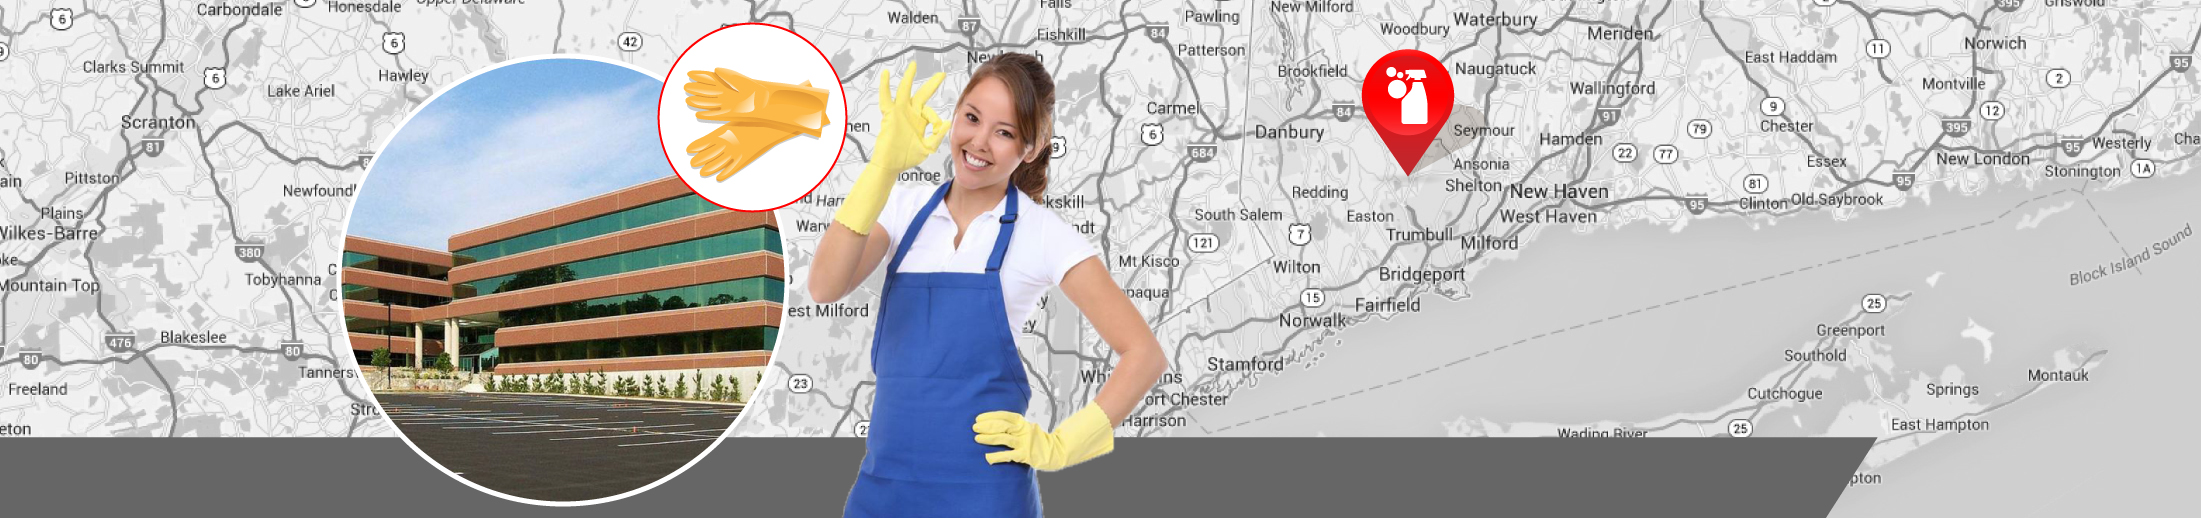 westchester_corporate_cleaning_banner_fairfield